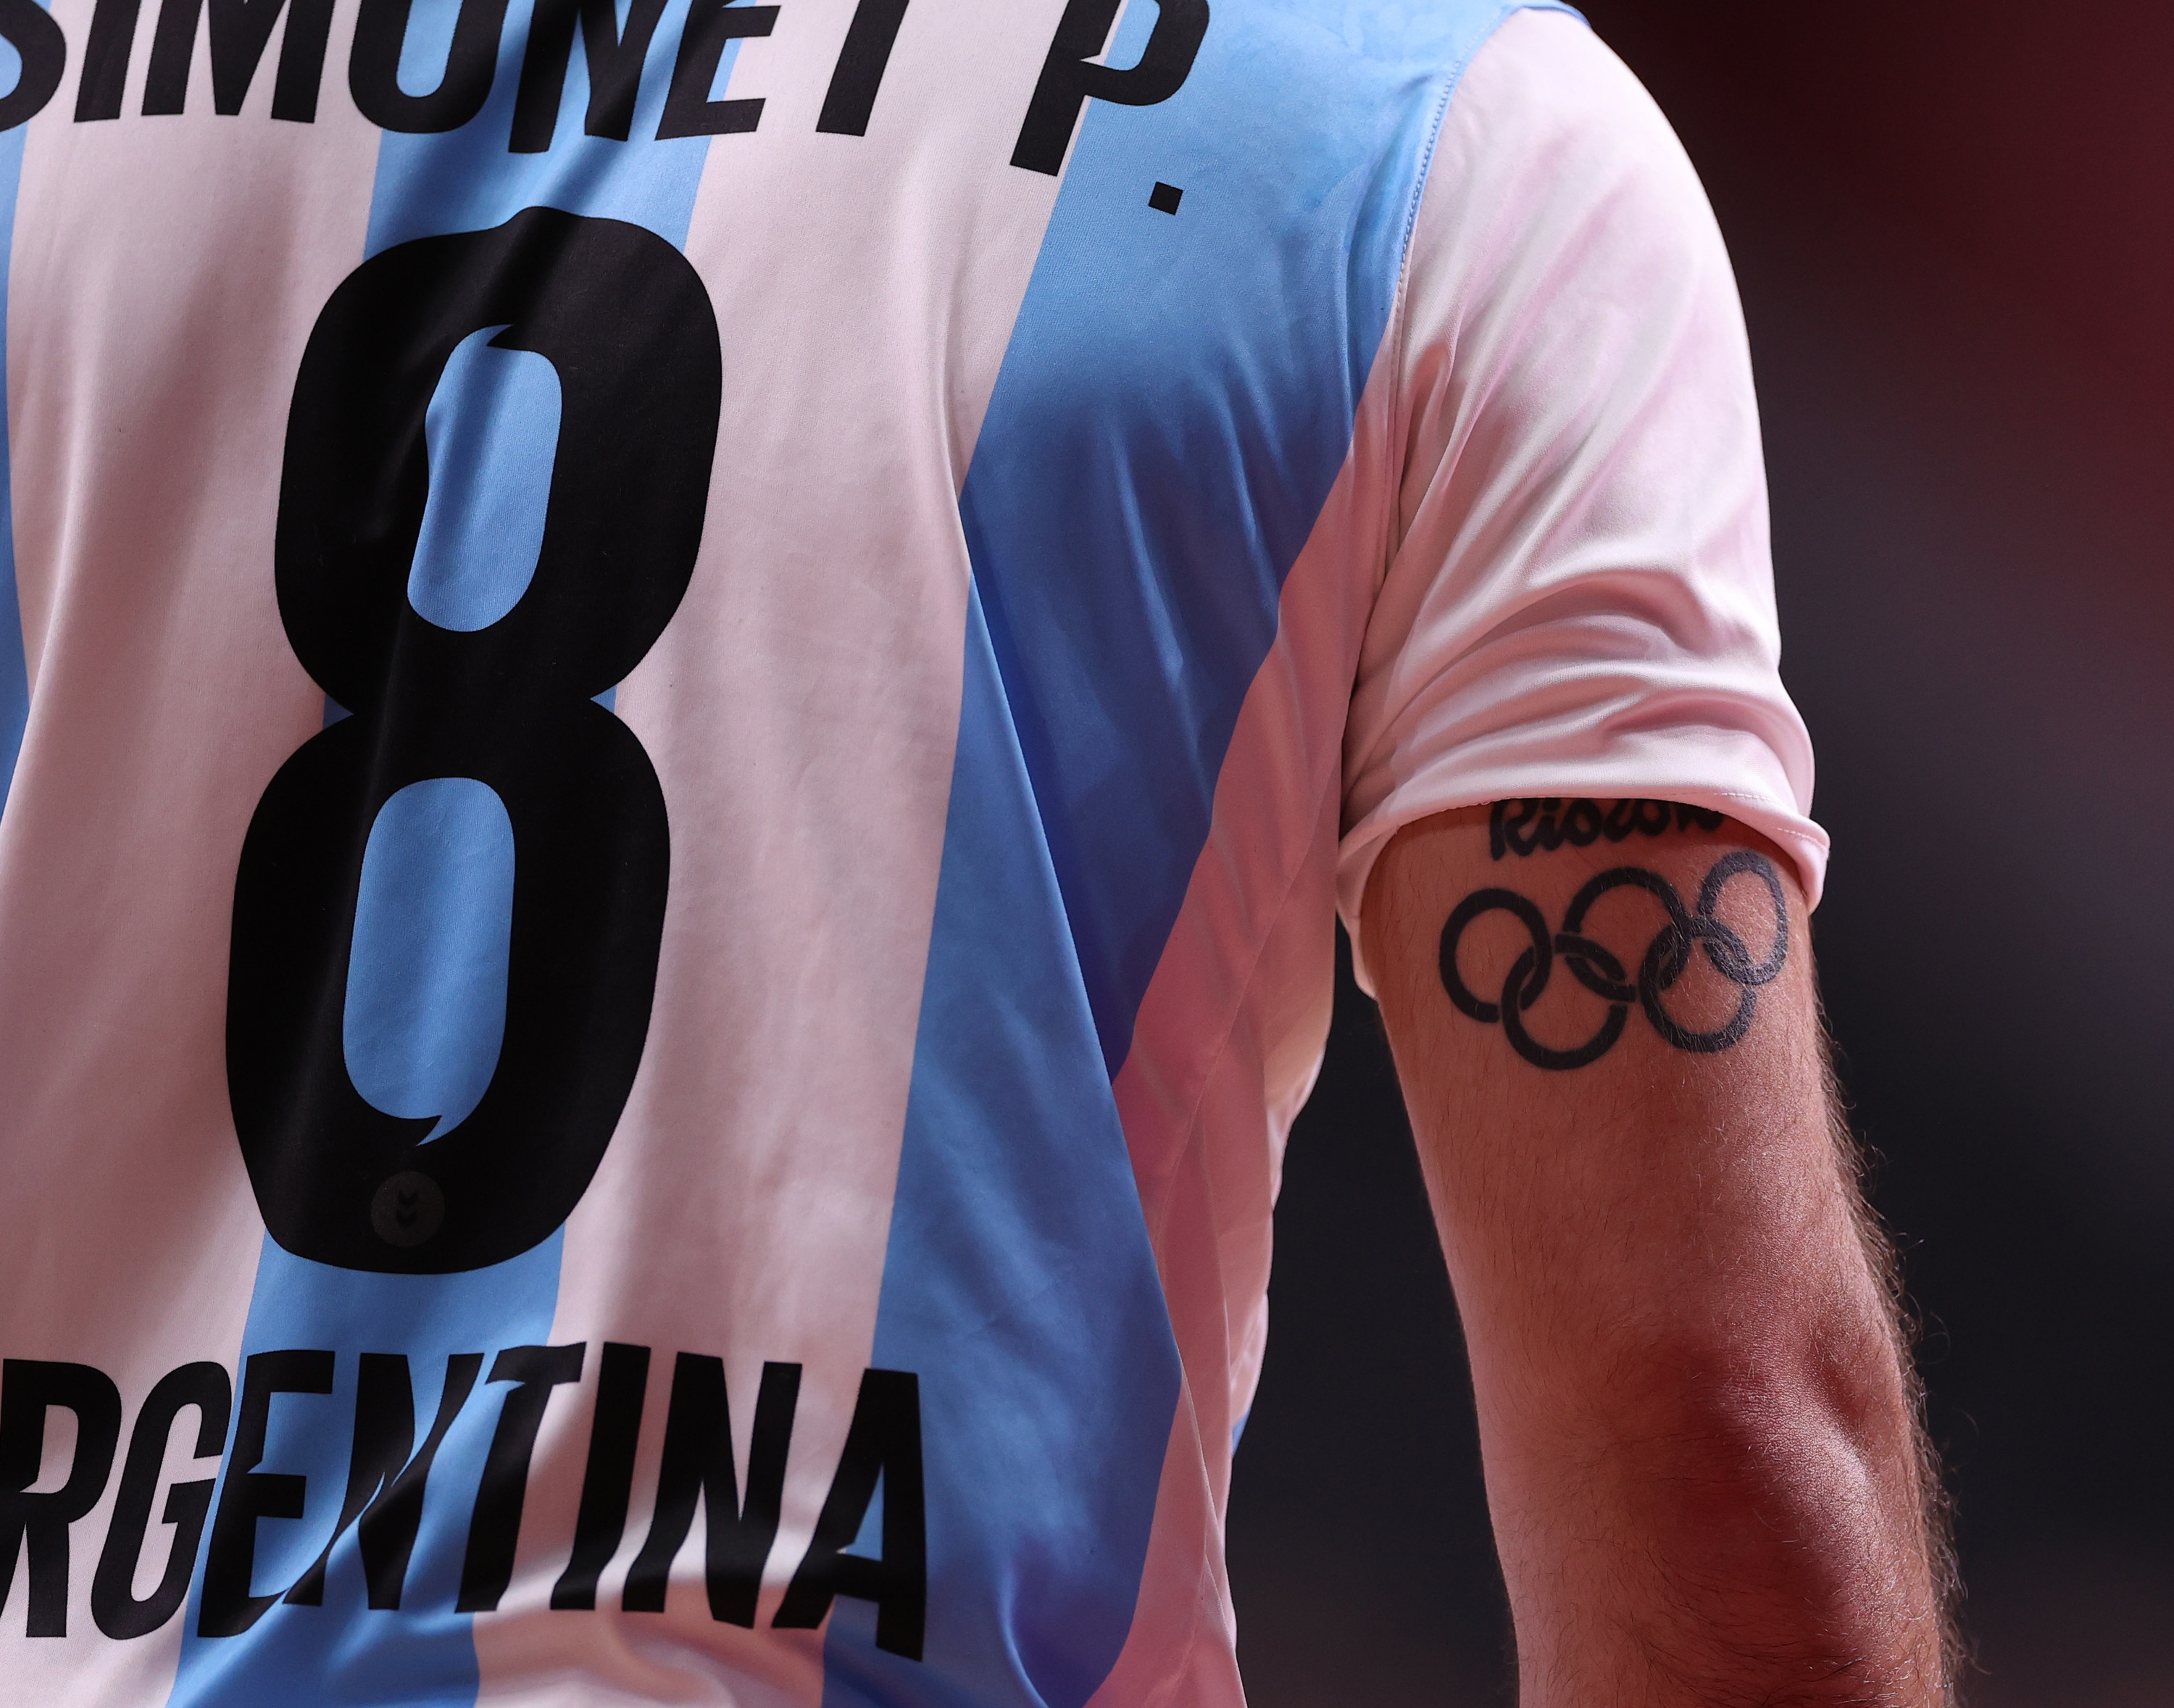 Close-up of Argentinian athlete's back, jersey and arm tattoo